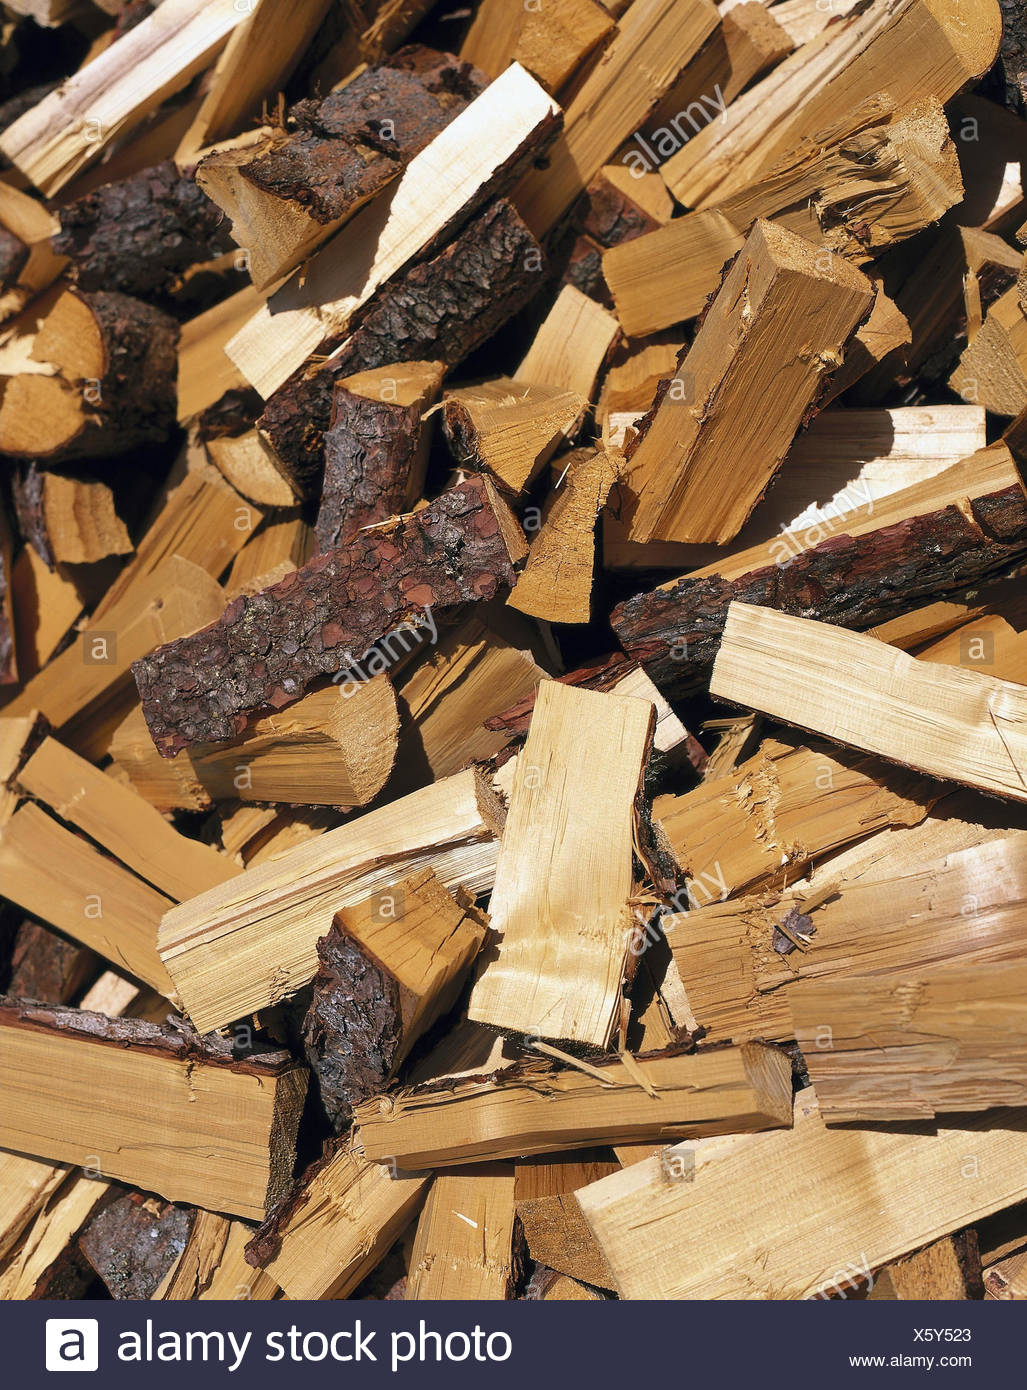 Firewood, heap, detail, wooden, Holzscheiter, softwood, spruce, trunks, strains, chopped, minced, fuel, product photography - Stock Image